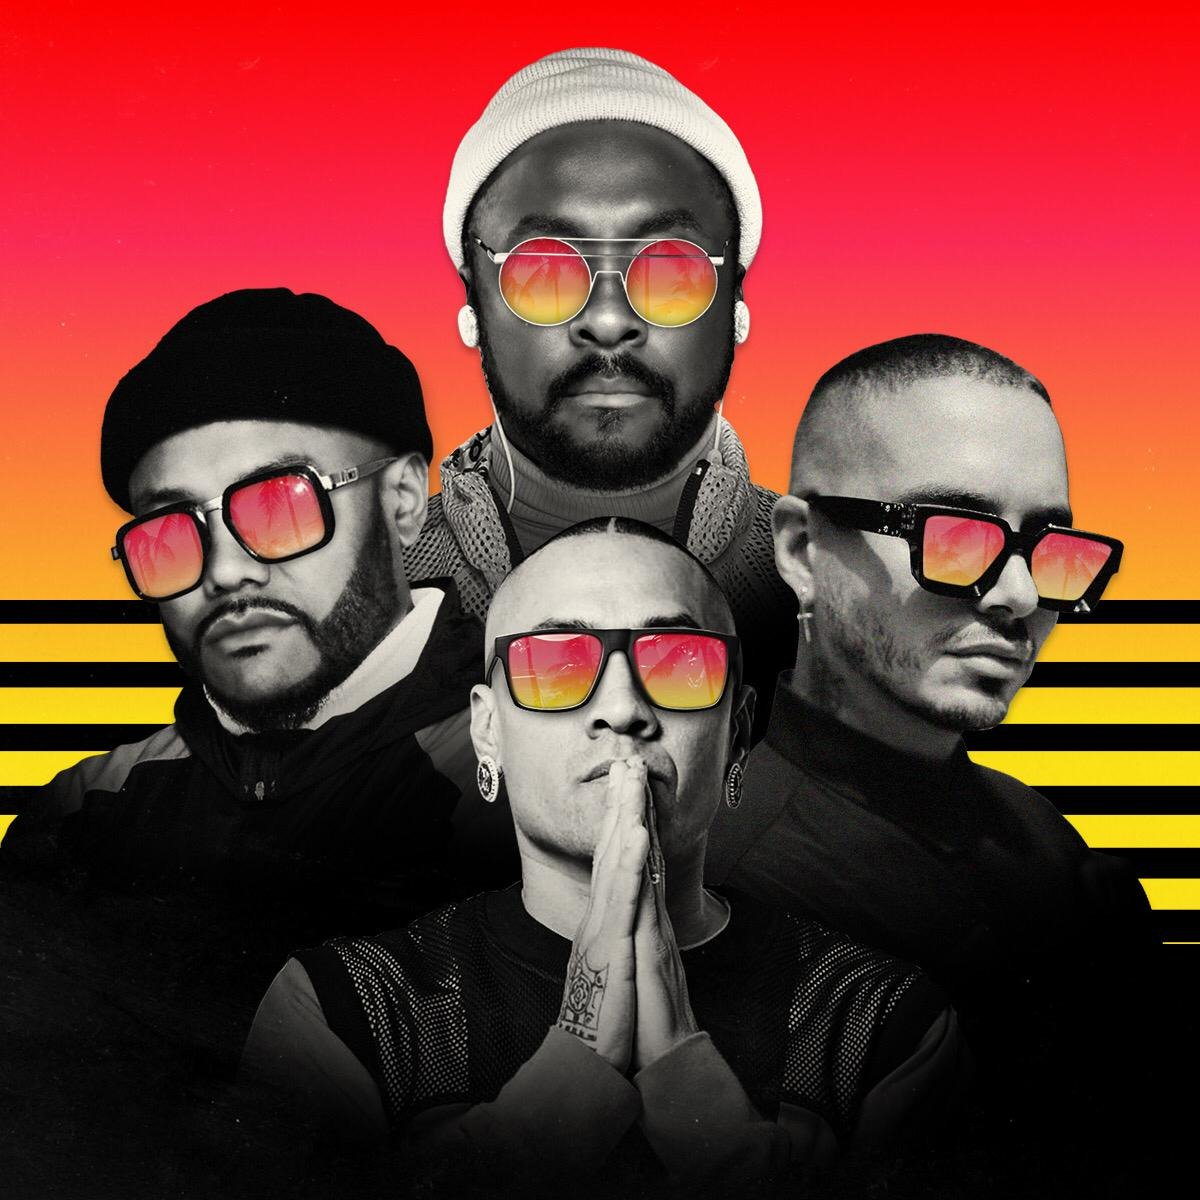 Ritmo 🔥 @jbalvin @bep 🔥 Friday 10.11